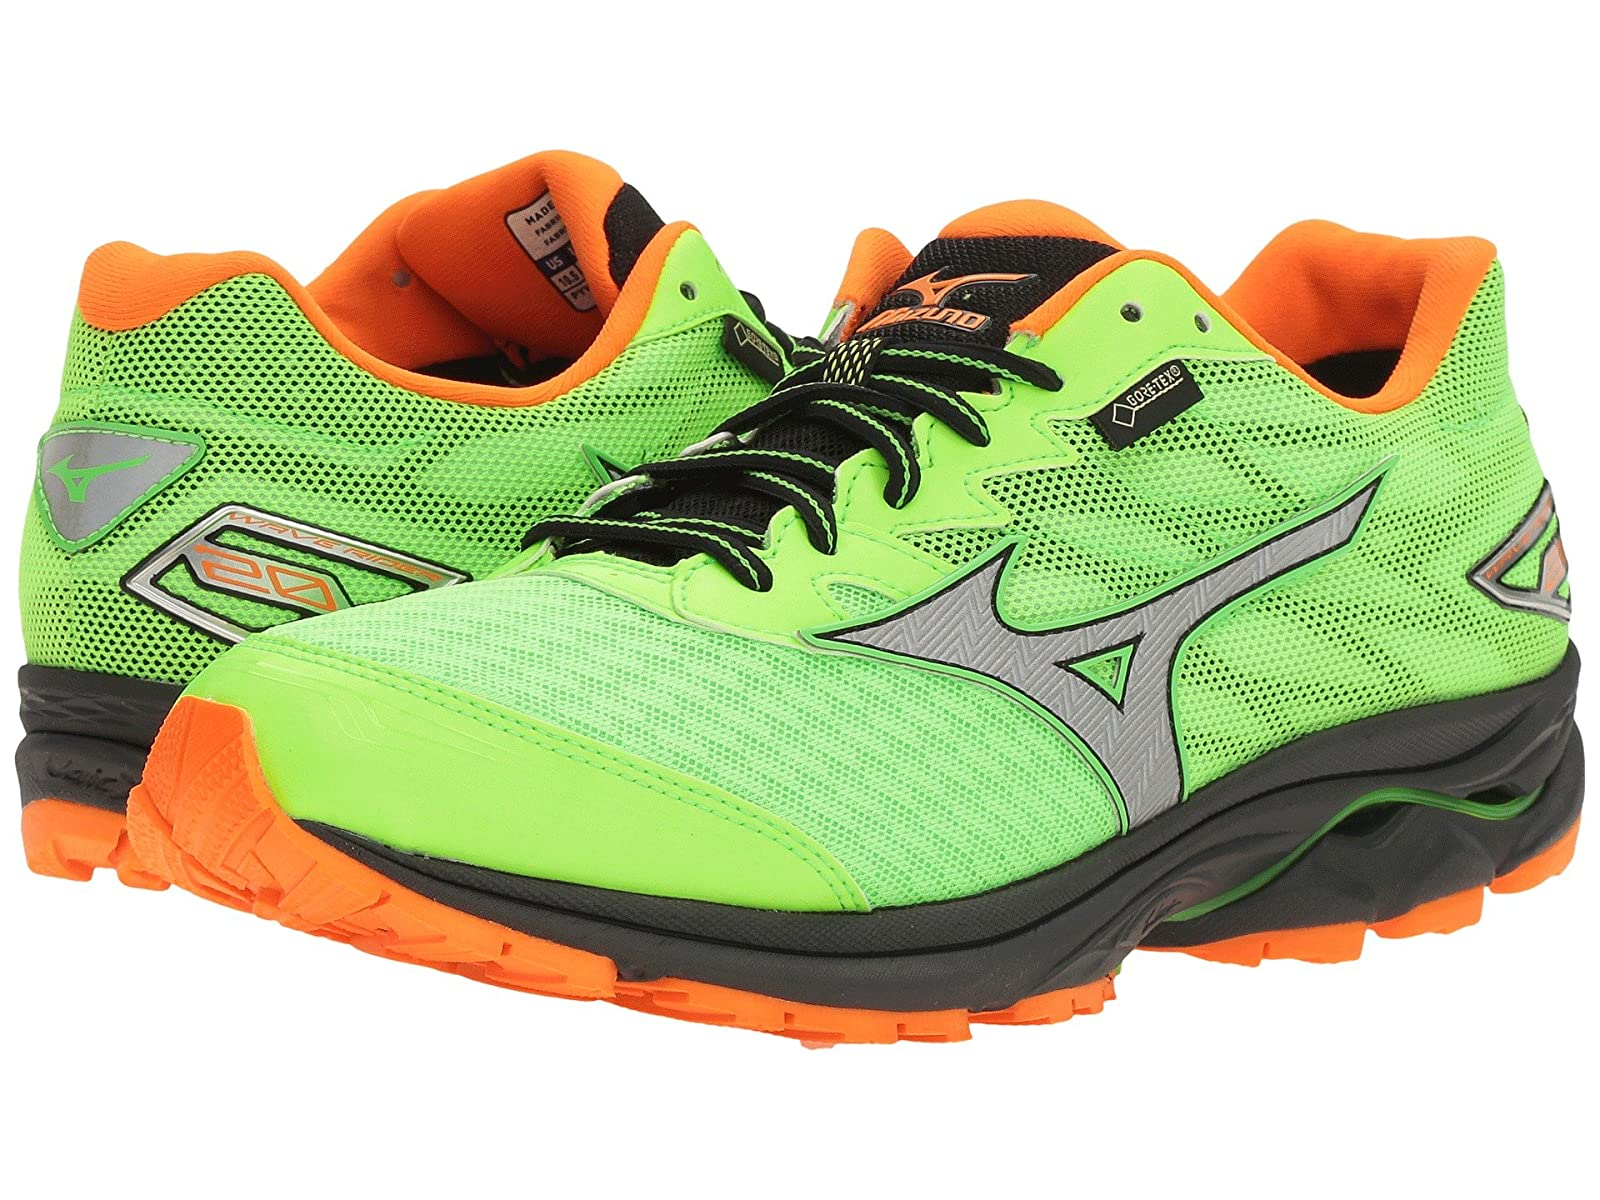 Mizuno Wave Rider 20 GTXCheap and distinctive eye-catching shoes